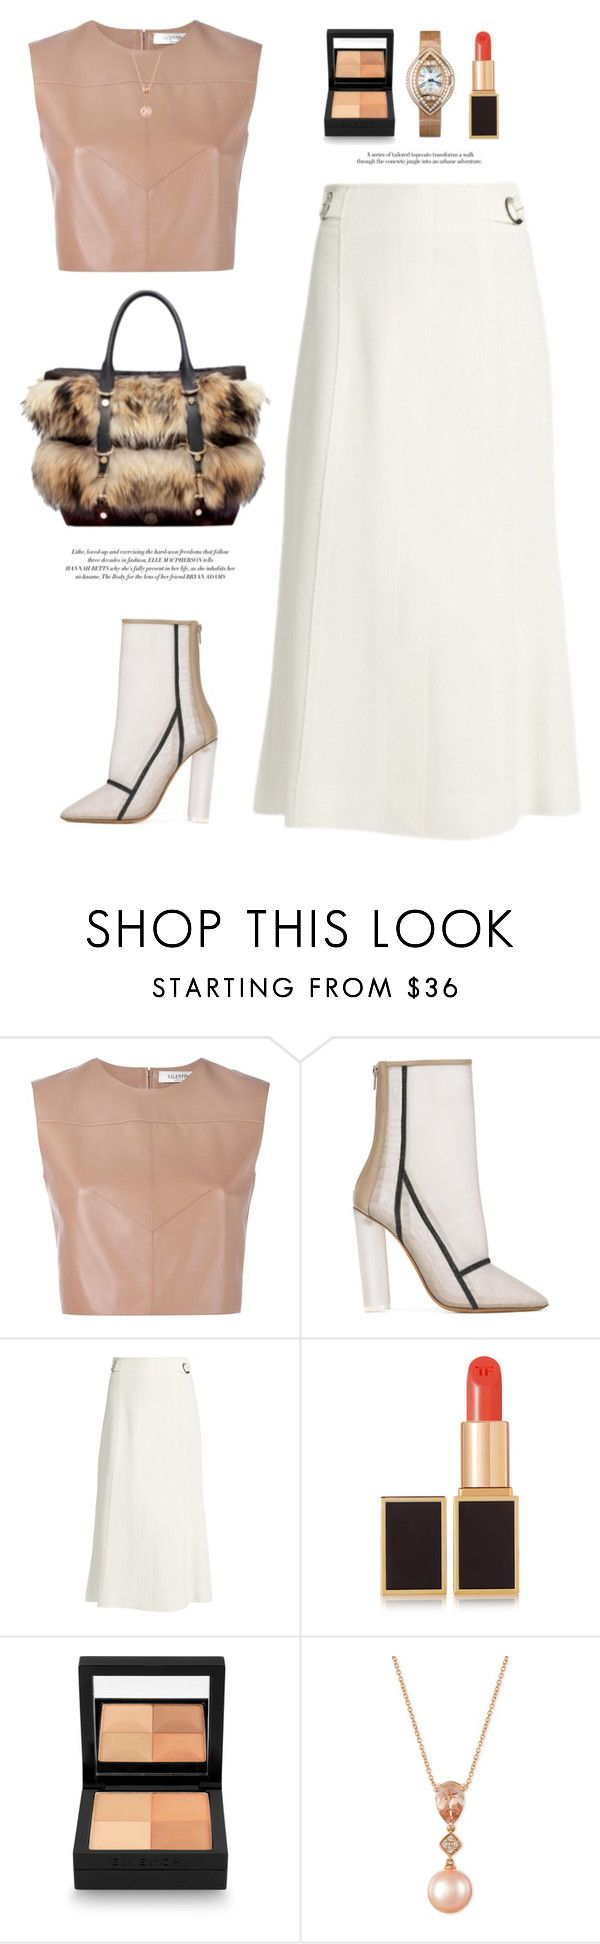 """Heel Boots"" by yexyka ❤ liked on Polyvore featuring Valentino, adidas Originals, Proenza Schouler, Moncler, Elle Macpherson Intimates, Tom Ford, Givenchy and LE VIAN"